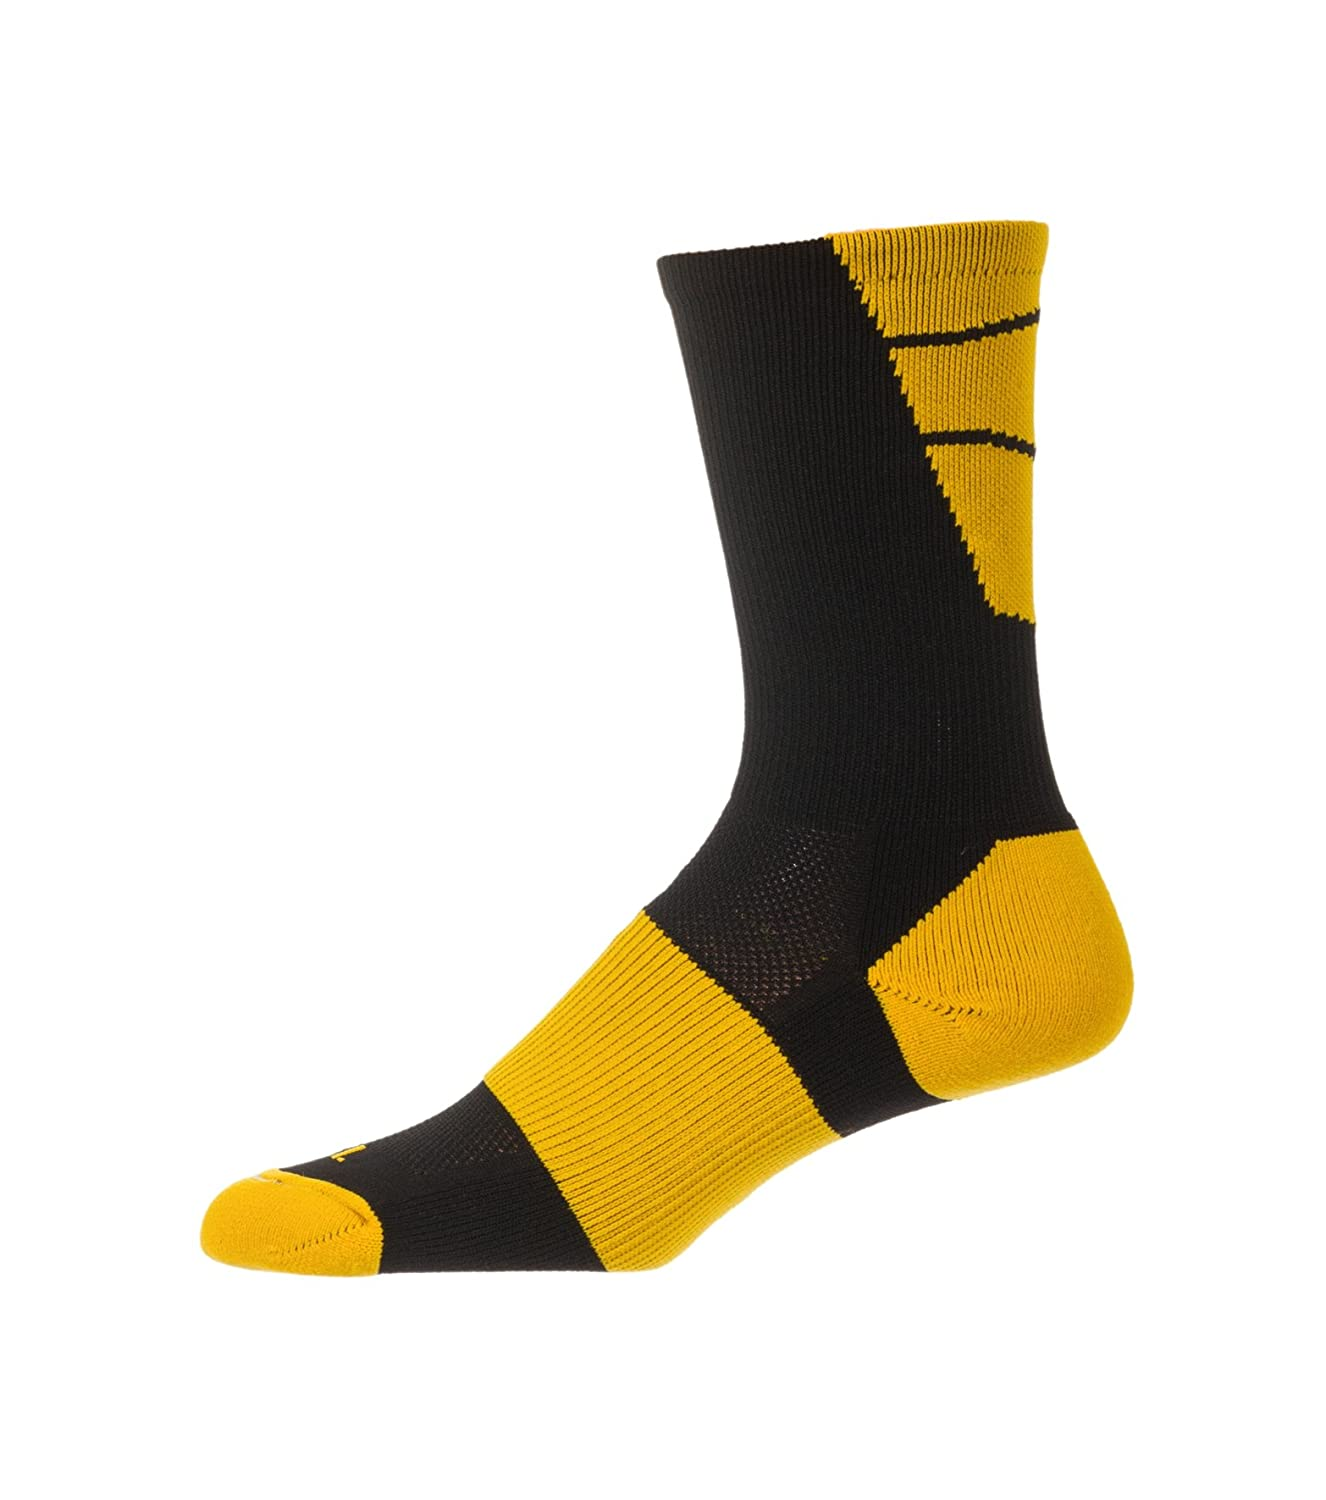 CSI Point Guard Performance Crew Socks Made In The USA Black/Ath Gold 6MAN10012